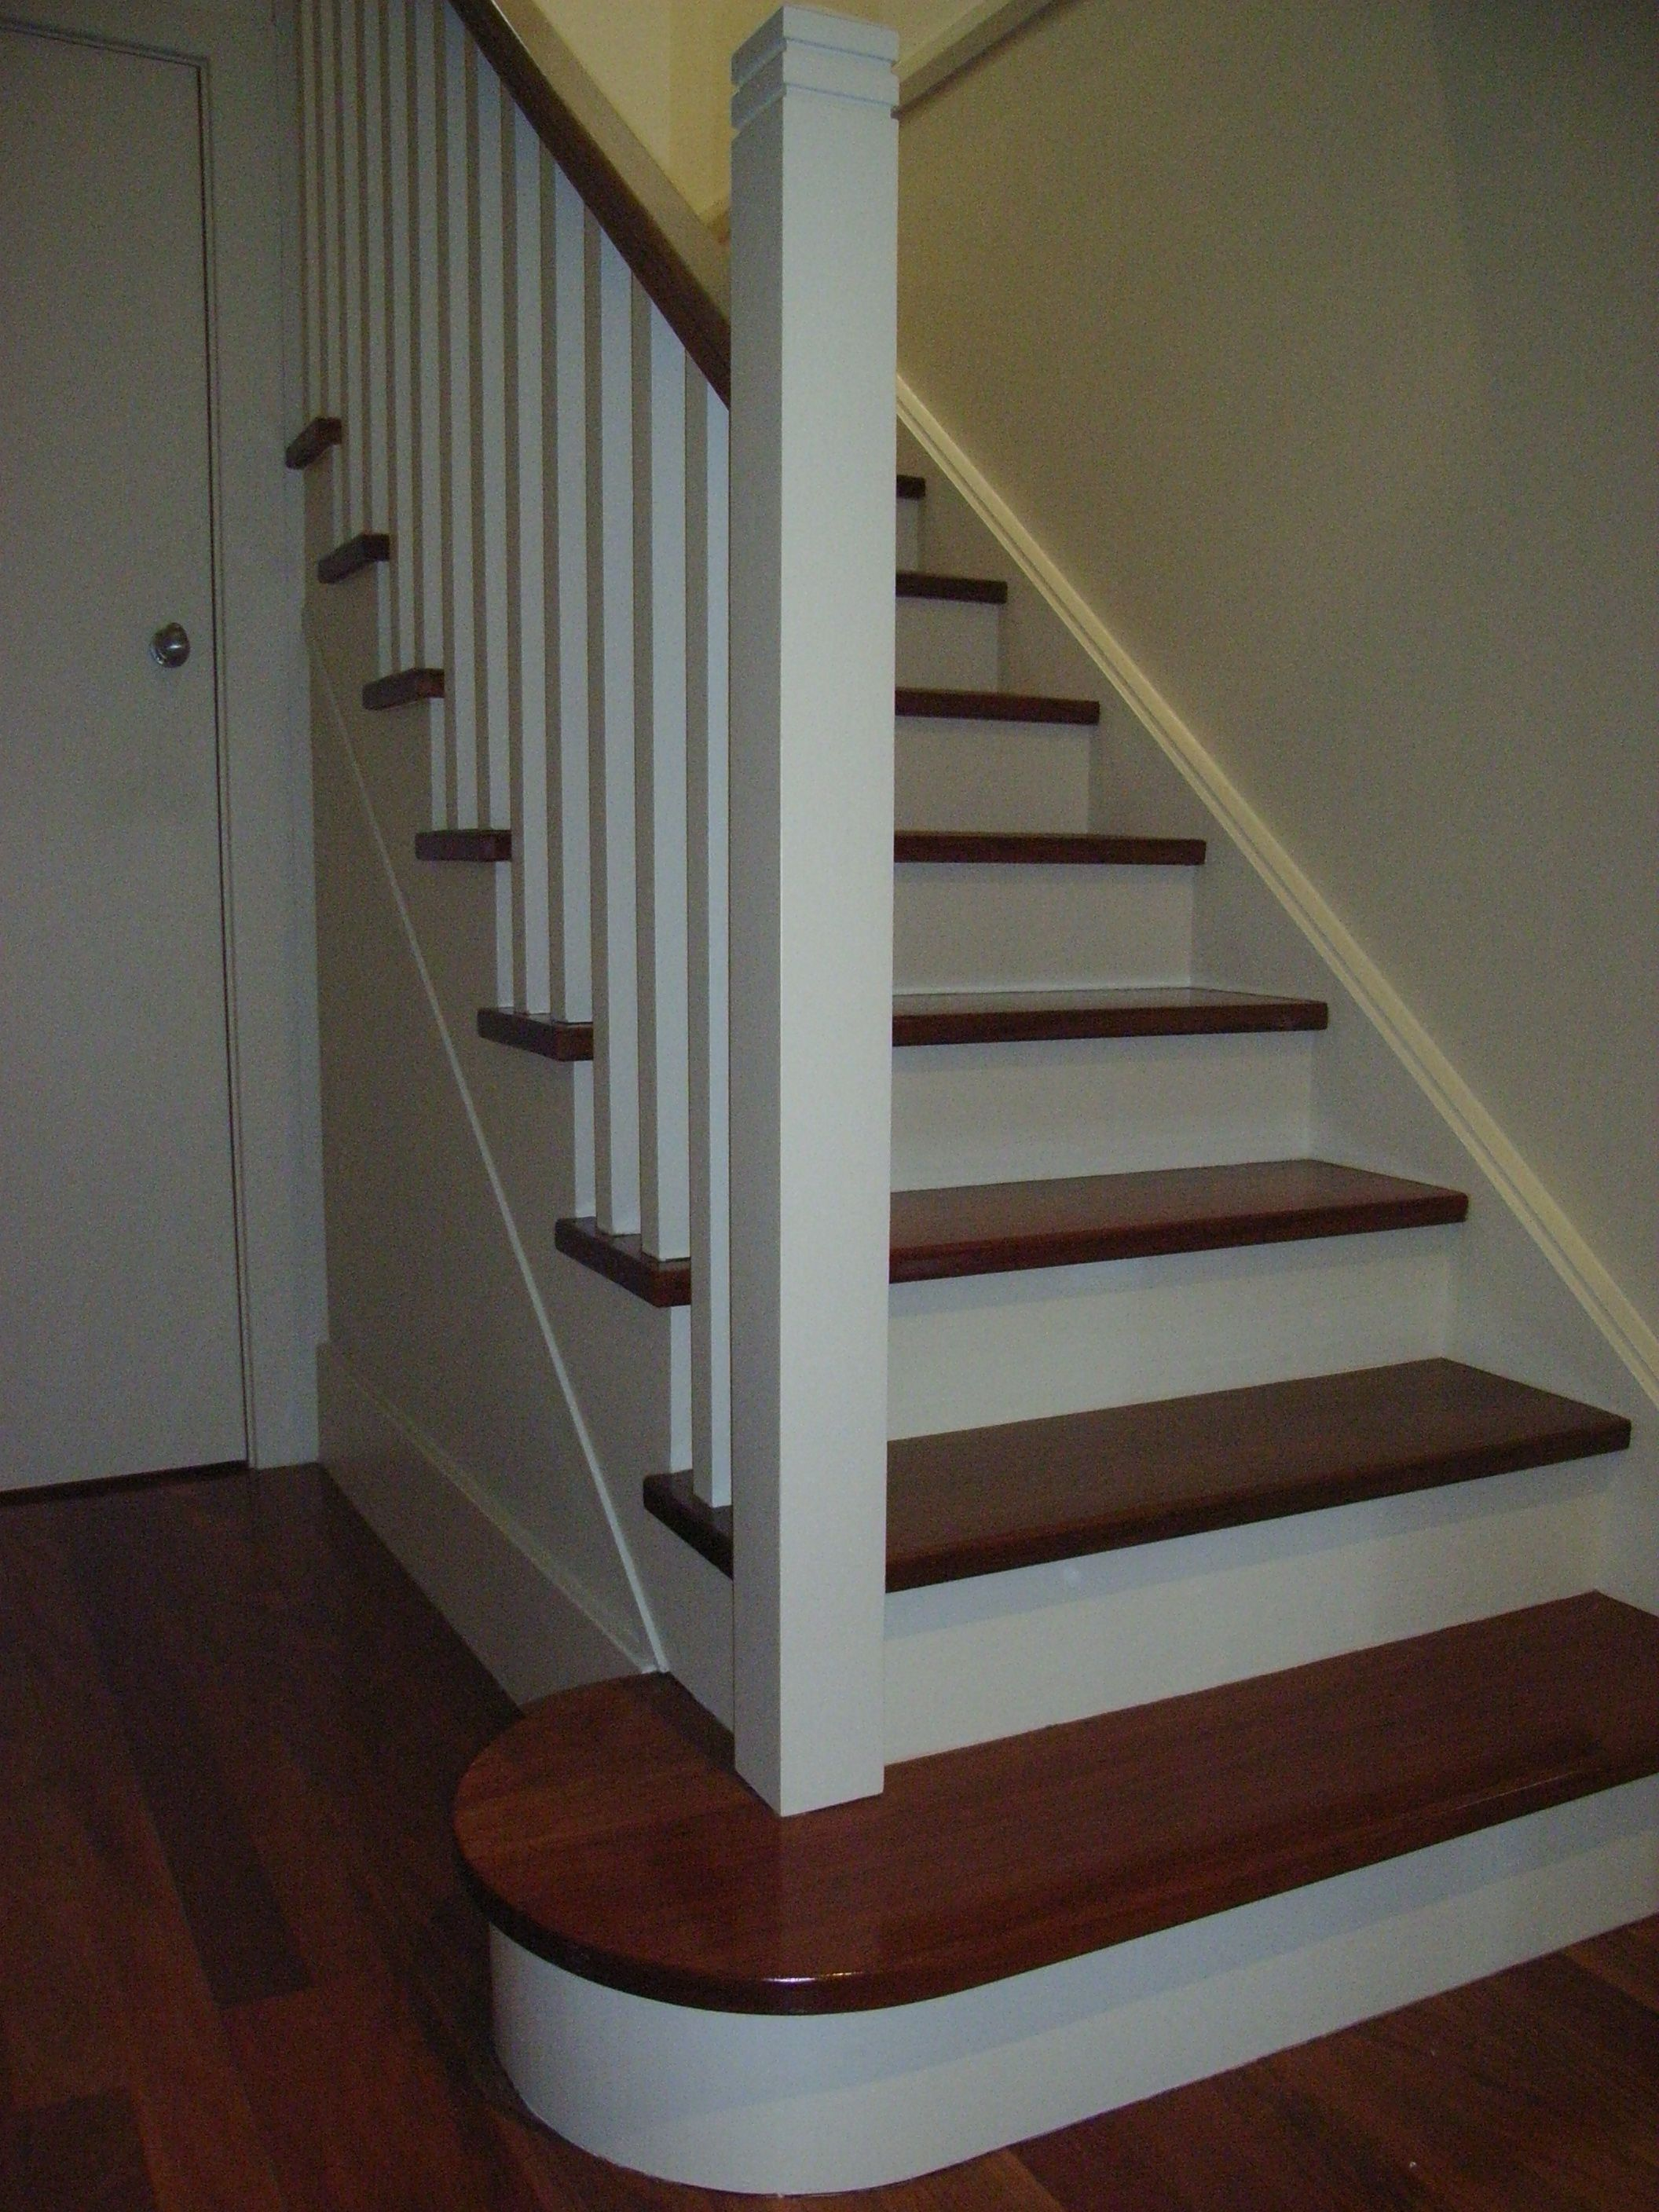 Timber Treads And Handrail With Painted Stringers, Risers And Balusters